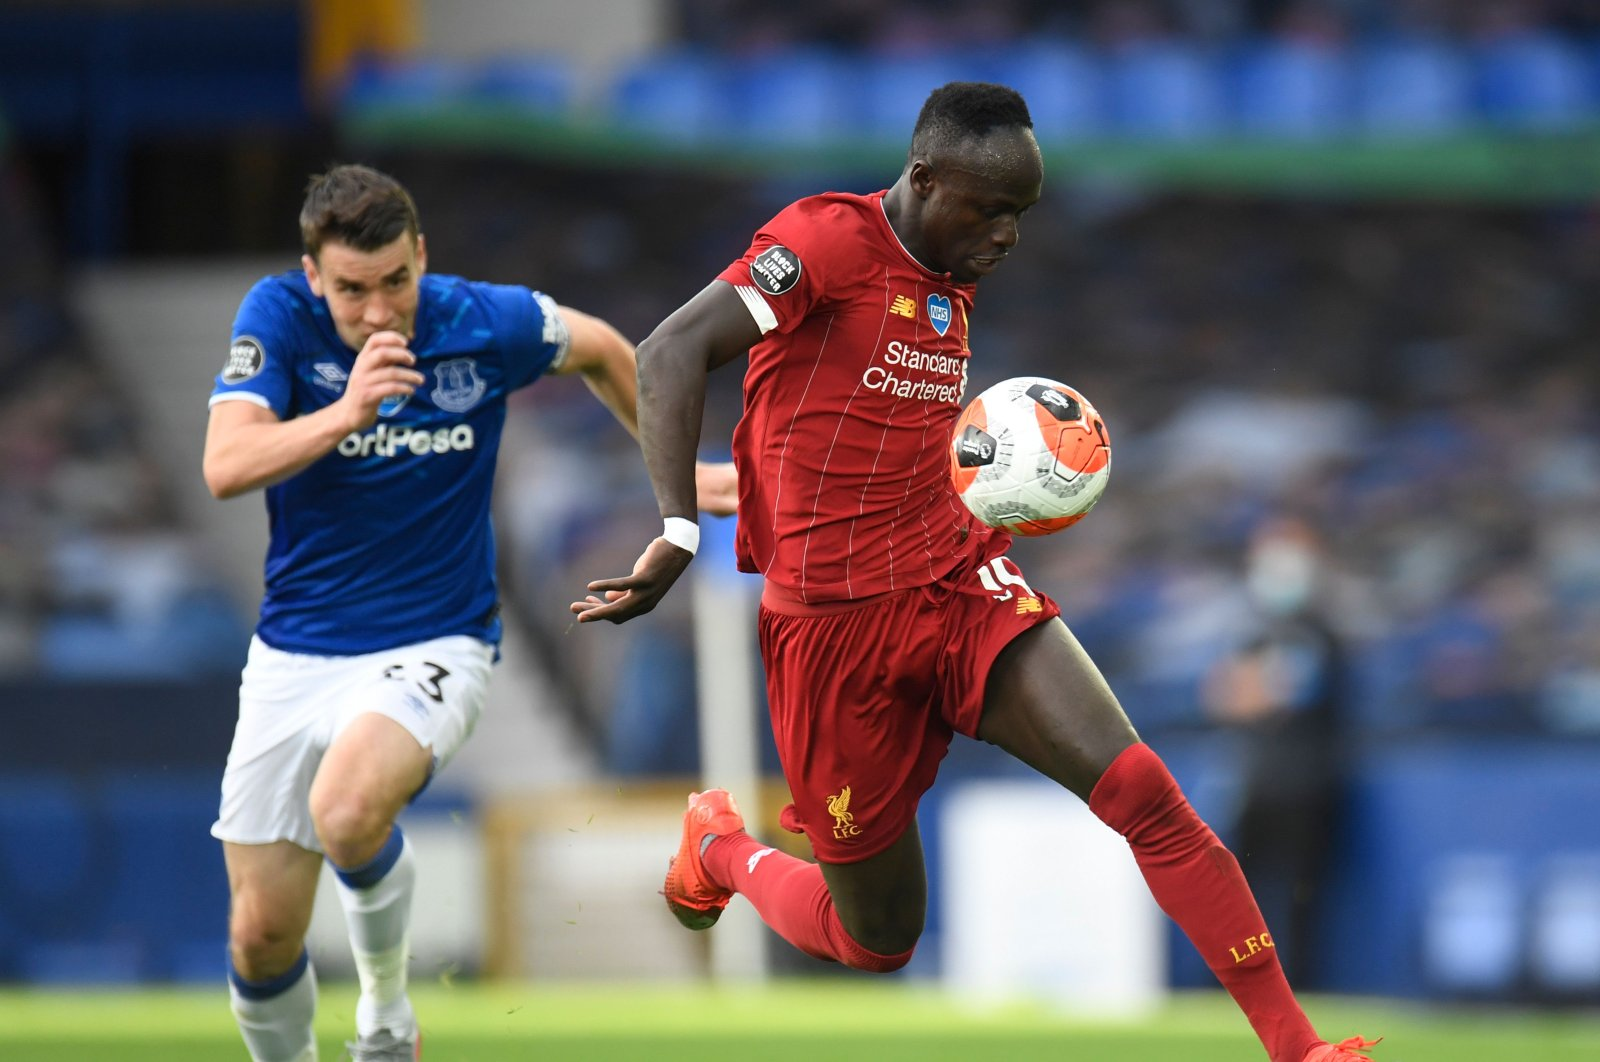 Liverpool's Sadio Mane (R) controls the ball during a match against Everton, in Liverpool, England, June 21, 2020. (AFP Photo)